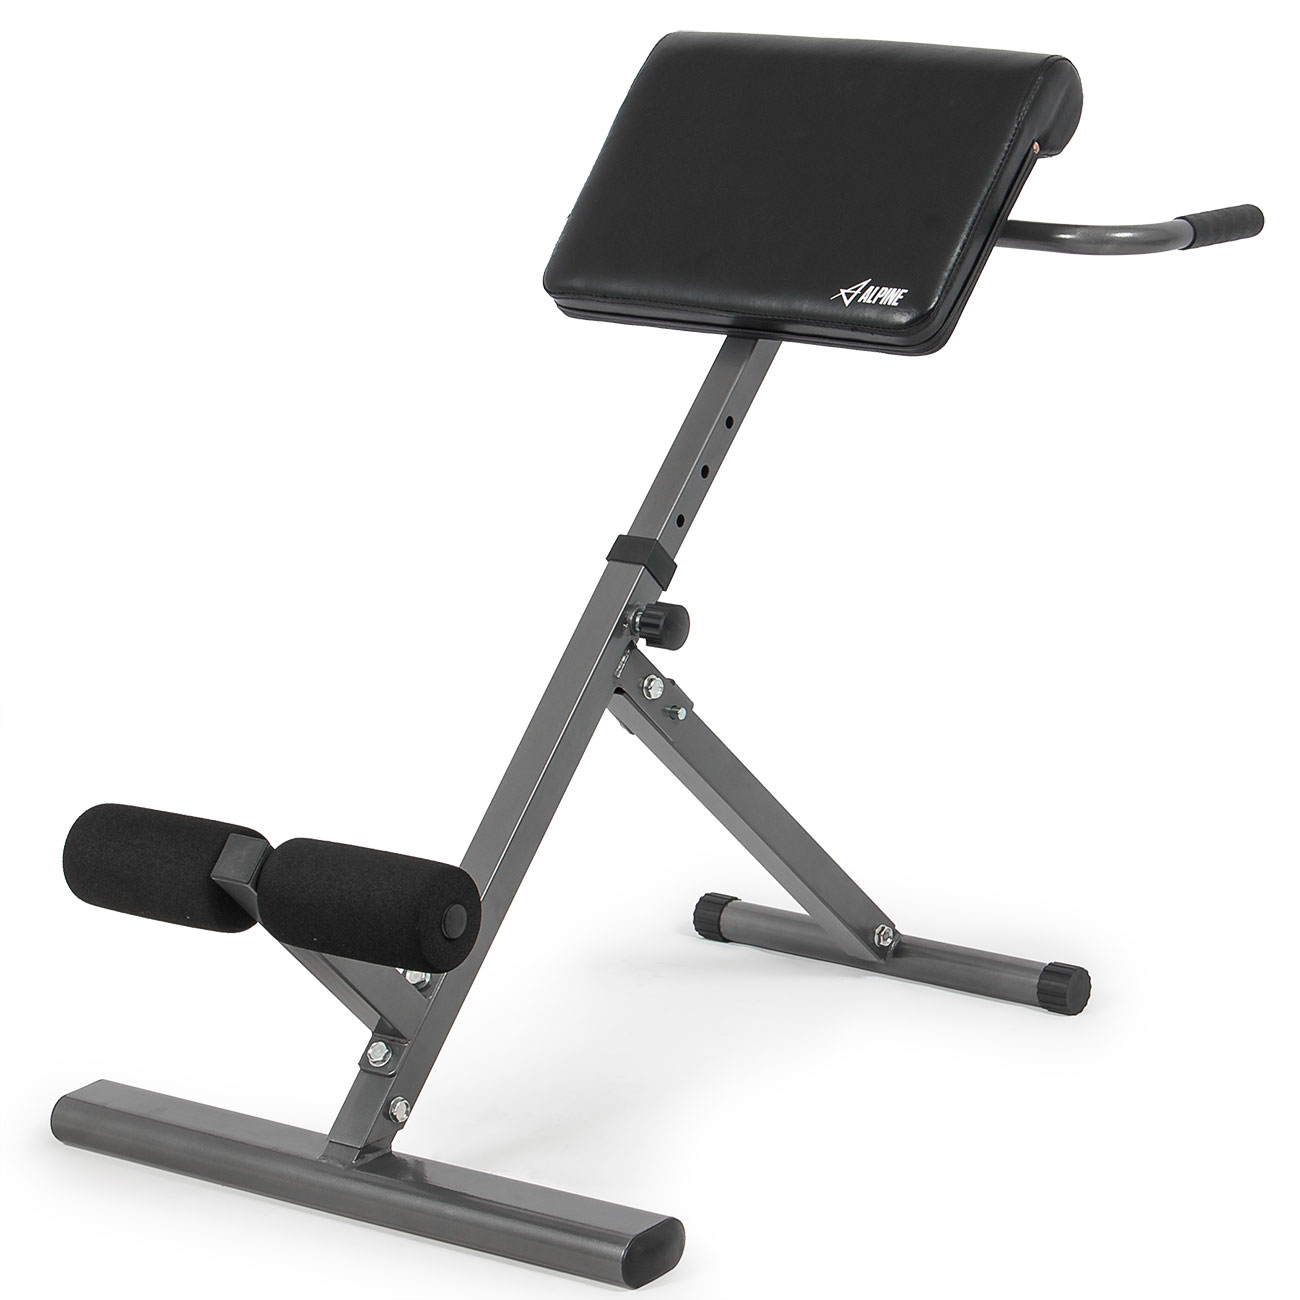 roman chair back extension muscles egg pod adjustable ab bench foldable hyperextension exercise